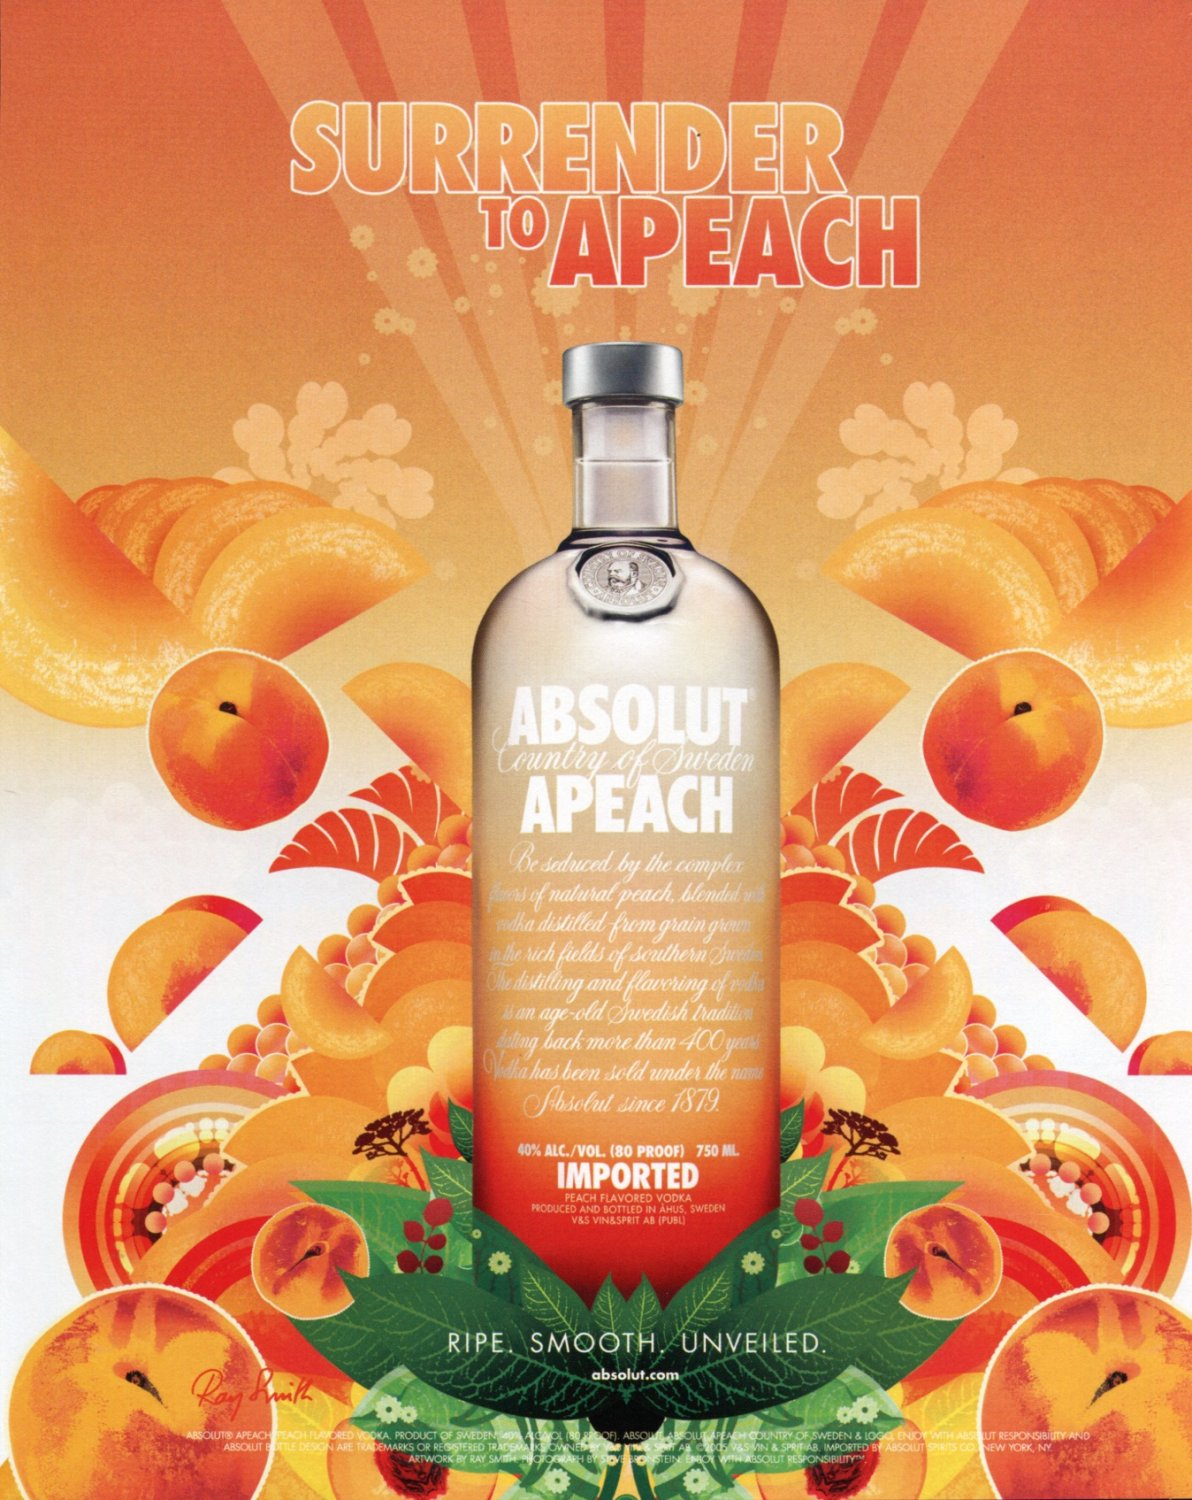 Ray Smith Absolut Apeach Absolut Vodka Ad Publicite Advert Surrender to Apeach Peach